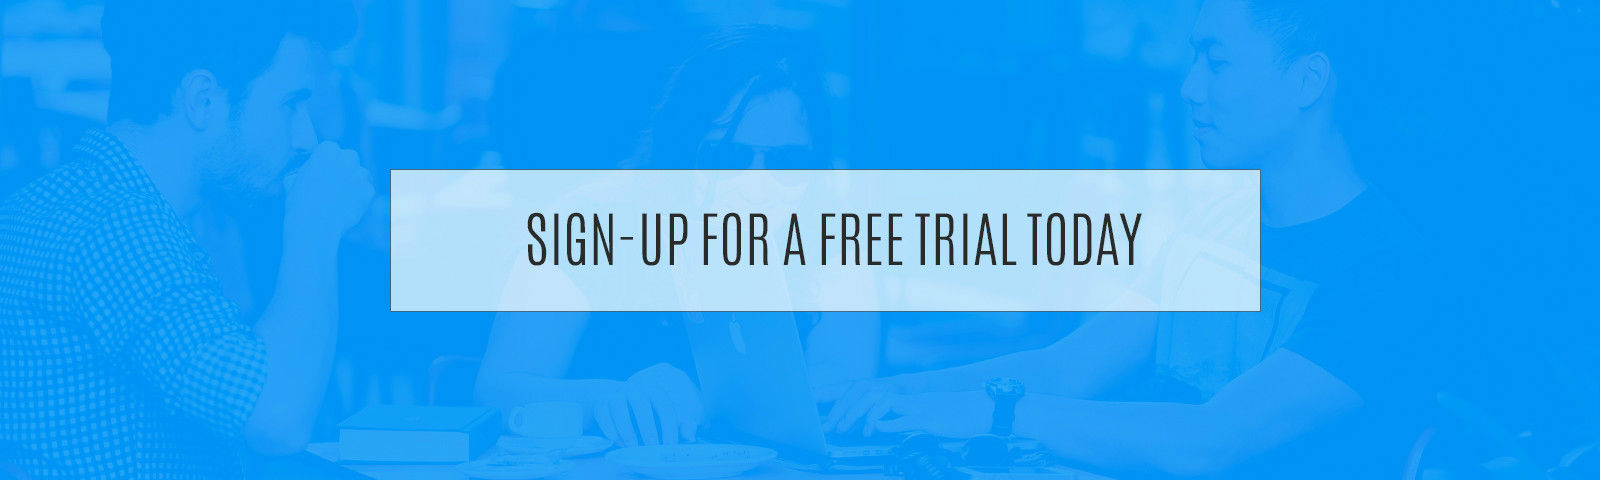 Signup for a free 30 day trial of Church Web Works.